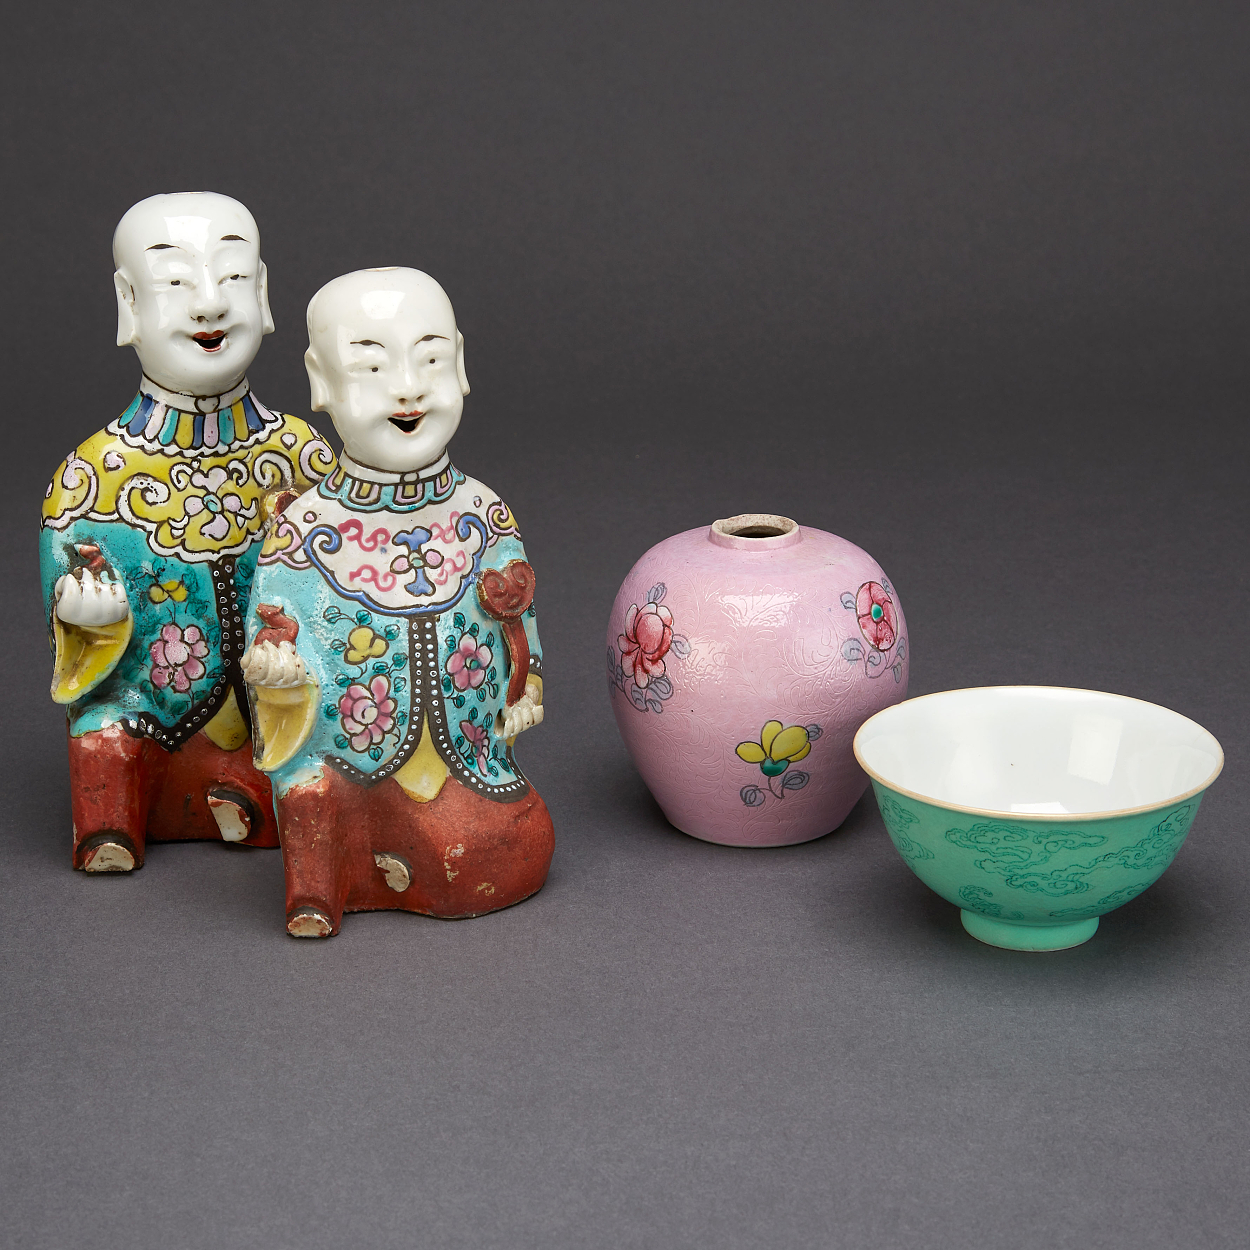 Two 'Laughing Boys', A Jar and A Cup